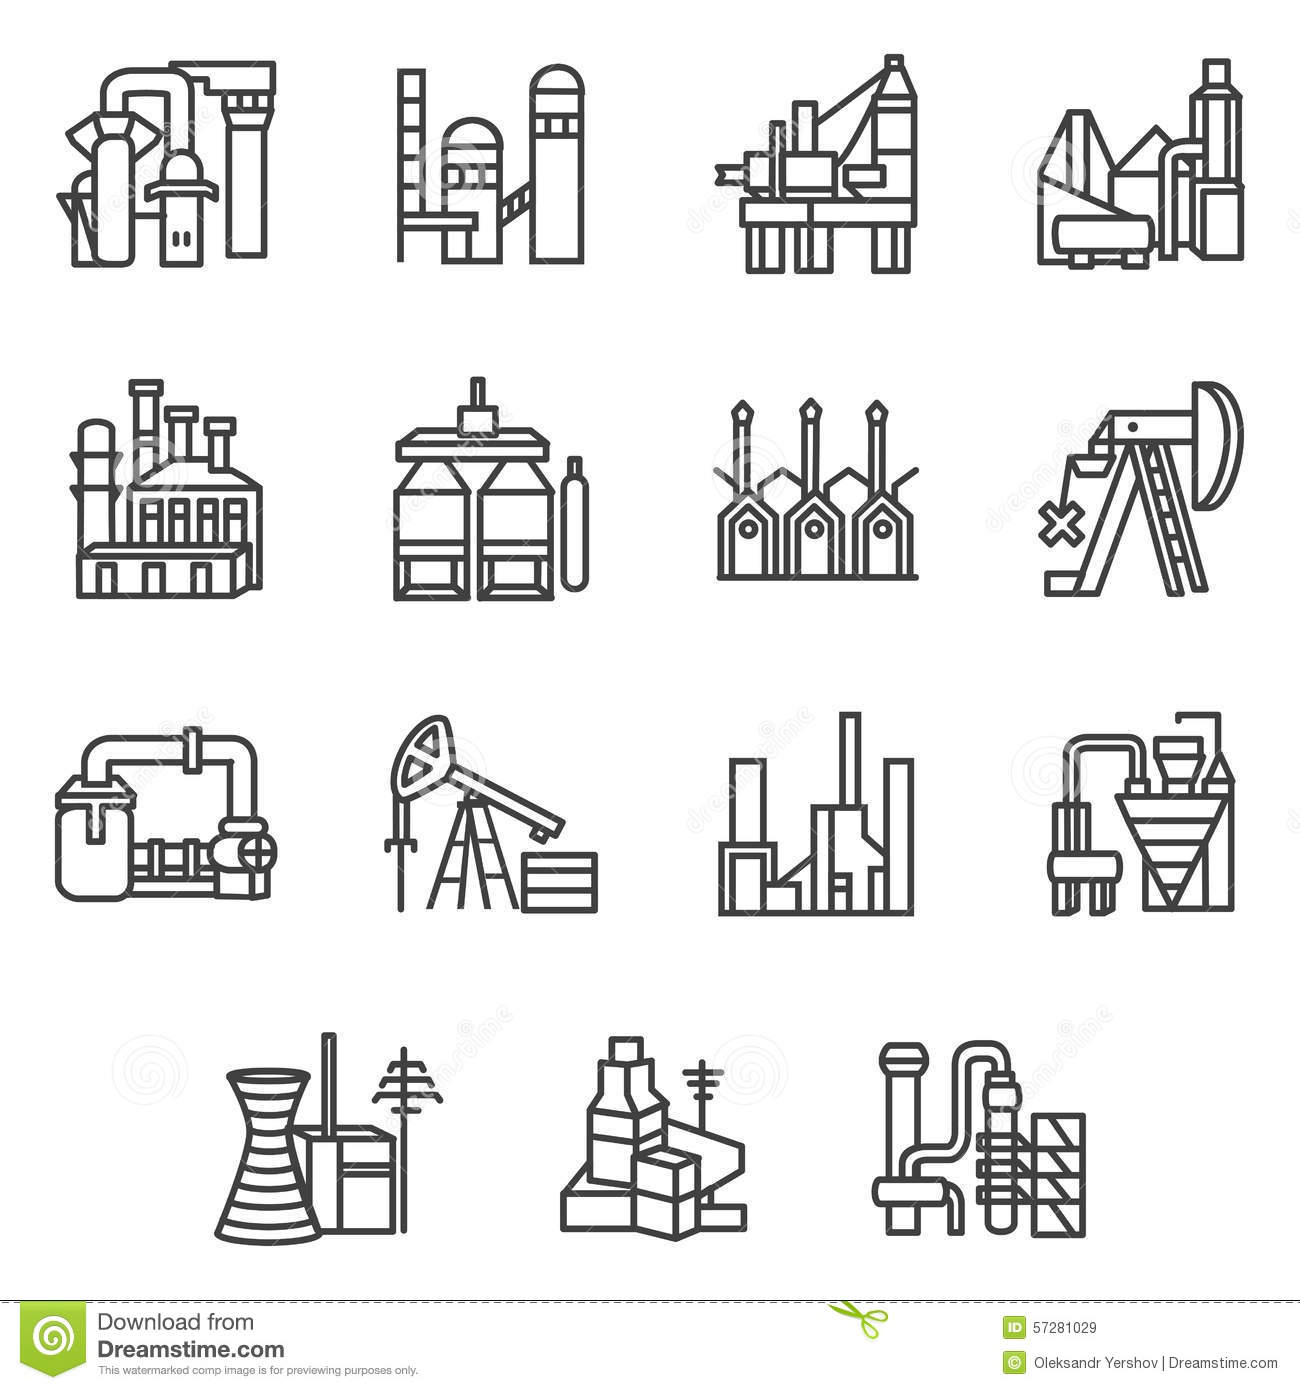 Medidas Sofa Neufert Industrial Objects Line Icons Set Stock Illustration